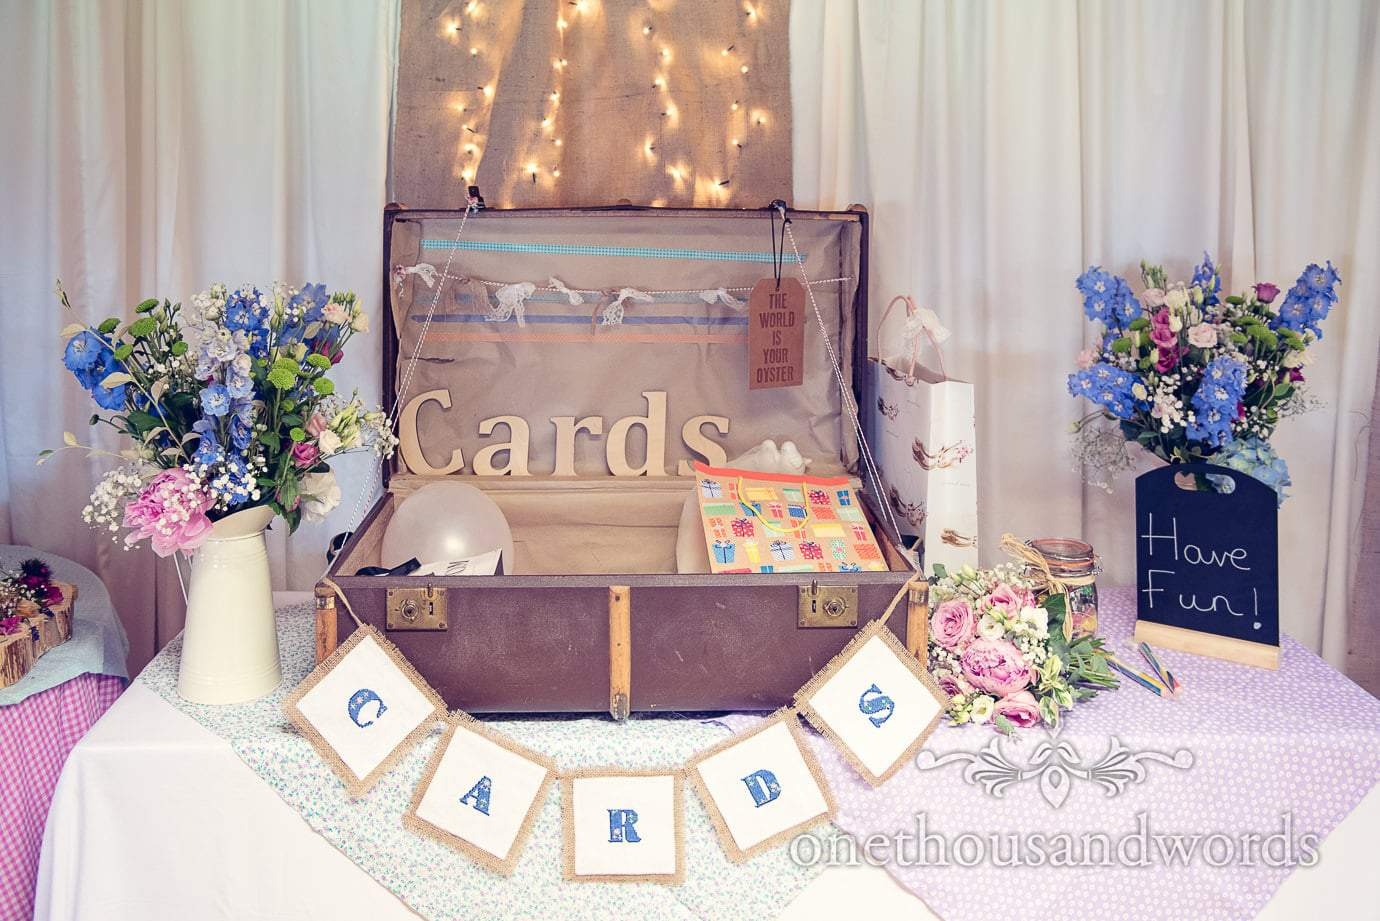 Wedding cards retro suitcase with flowers and fairy lights